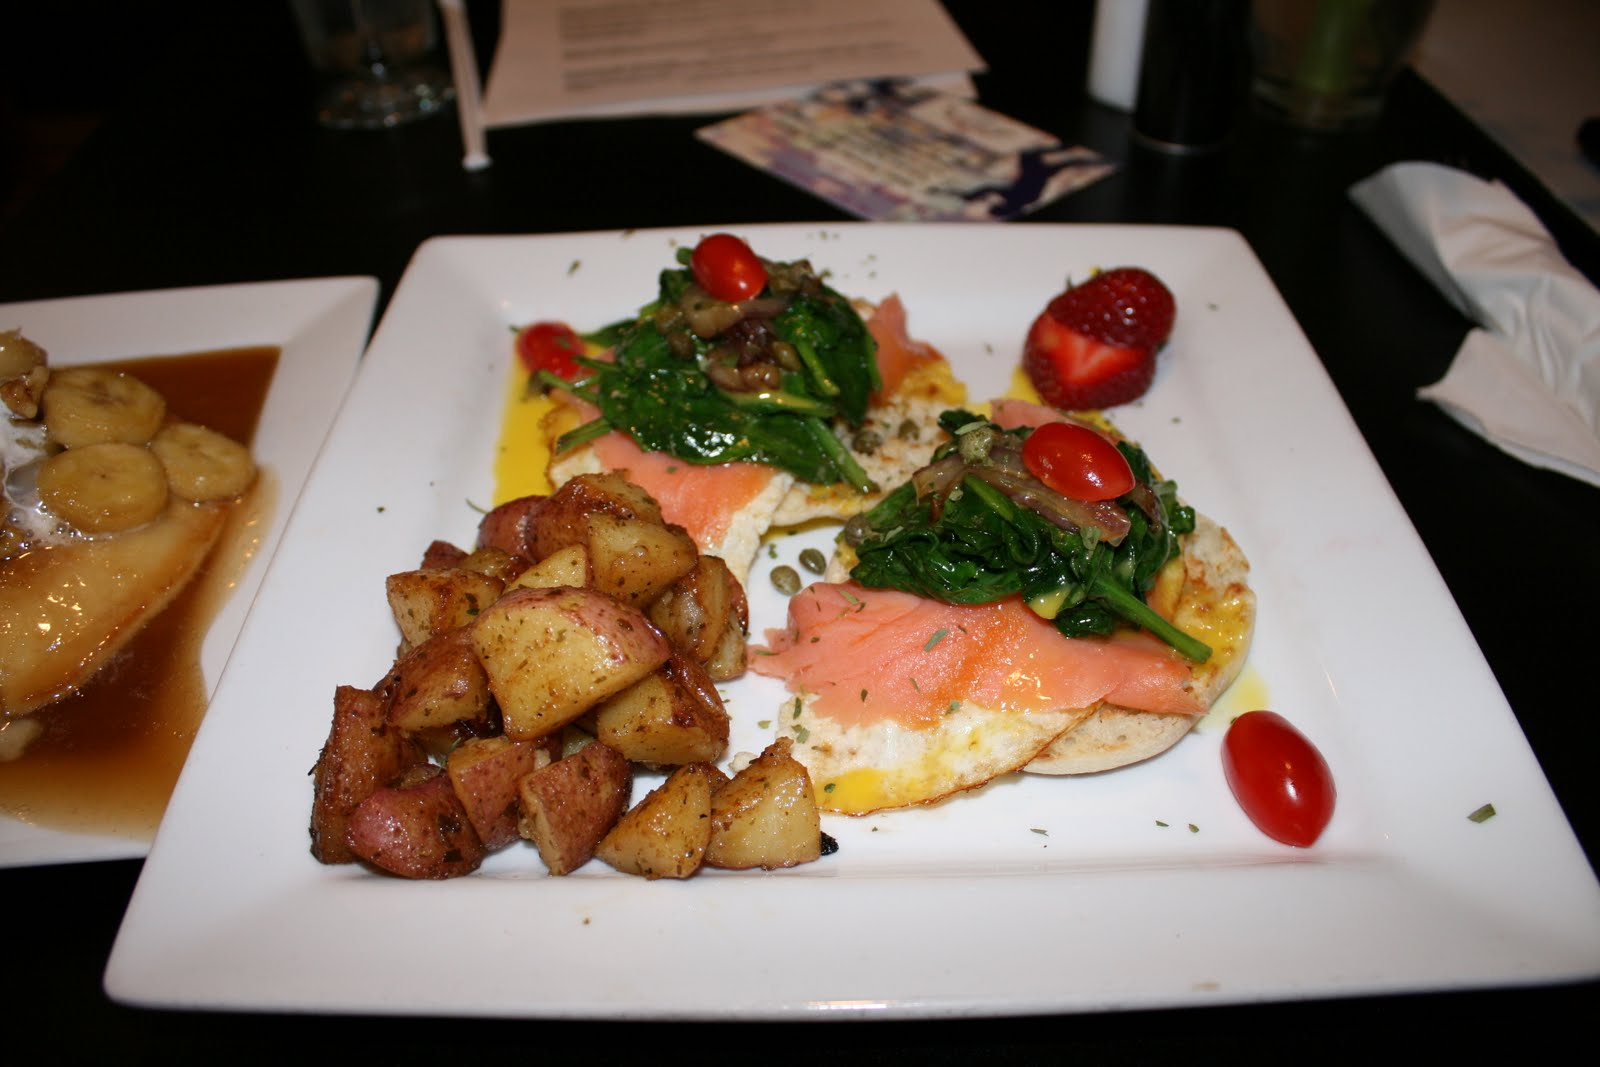 and had their own original spice blend peppered on them this is fun if you way to change it up from the traditional eggs benedict - Garden Brunch Cafe